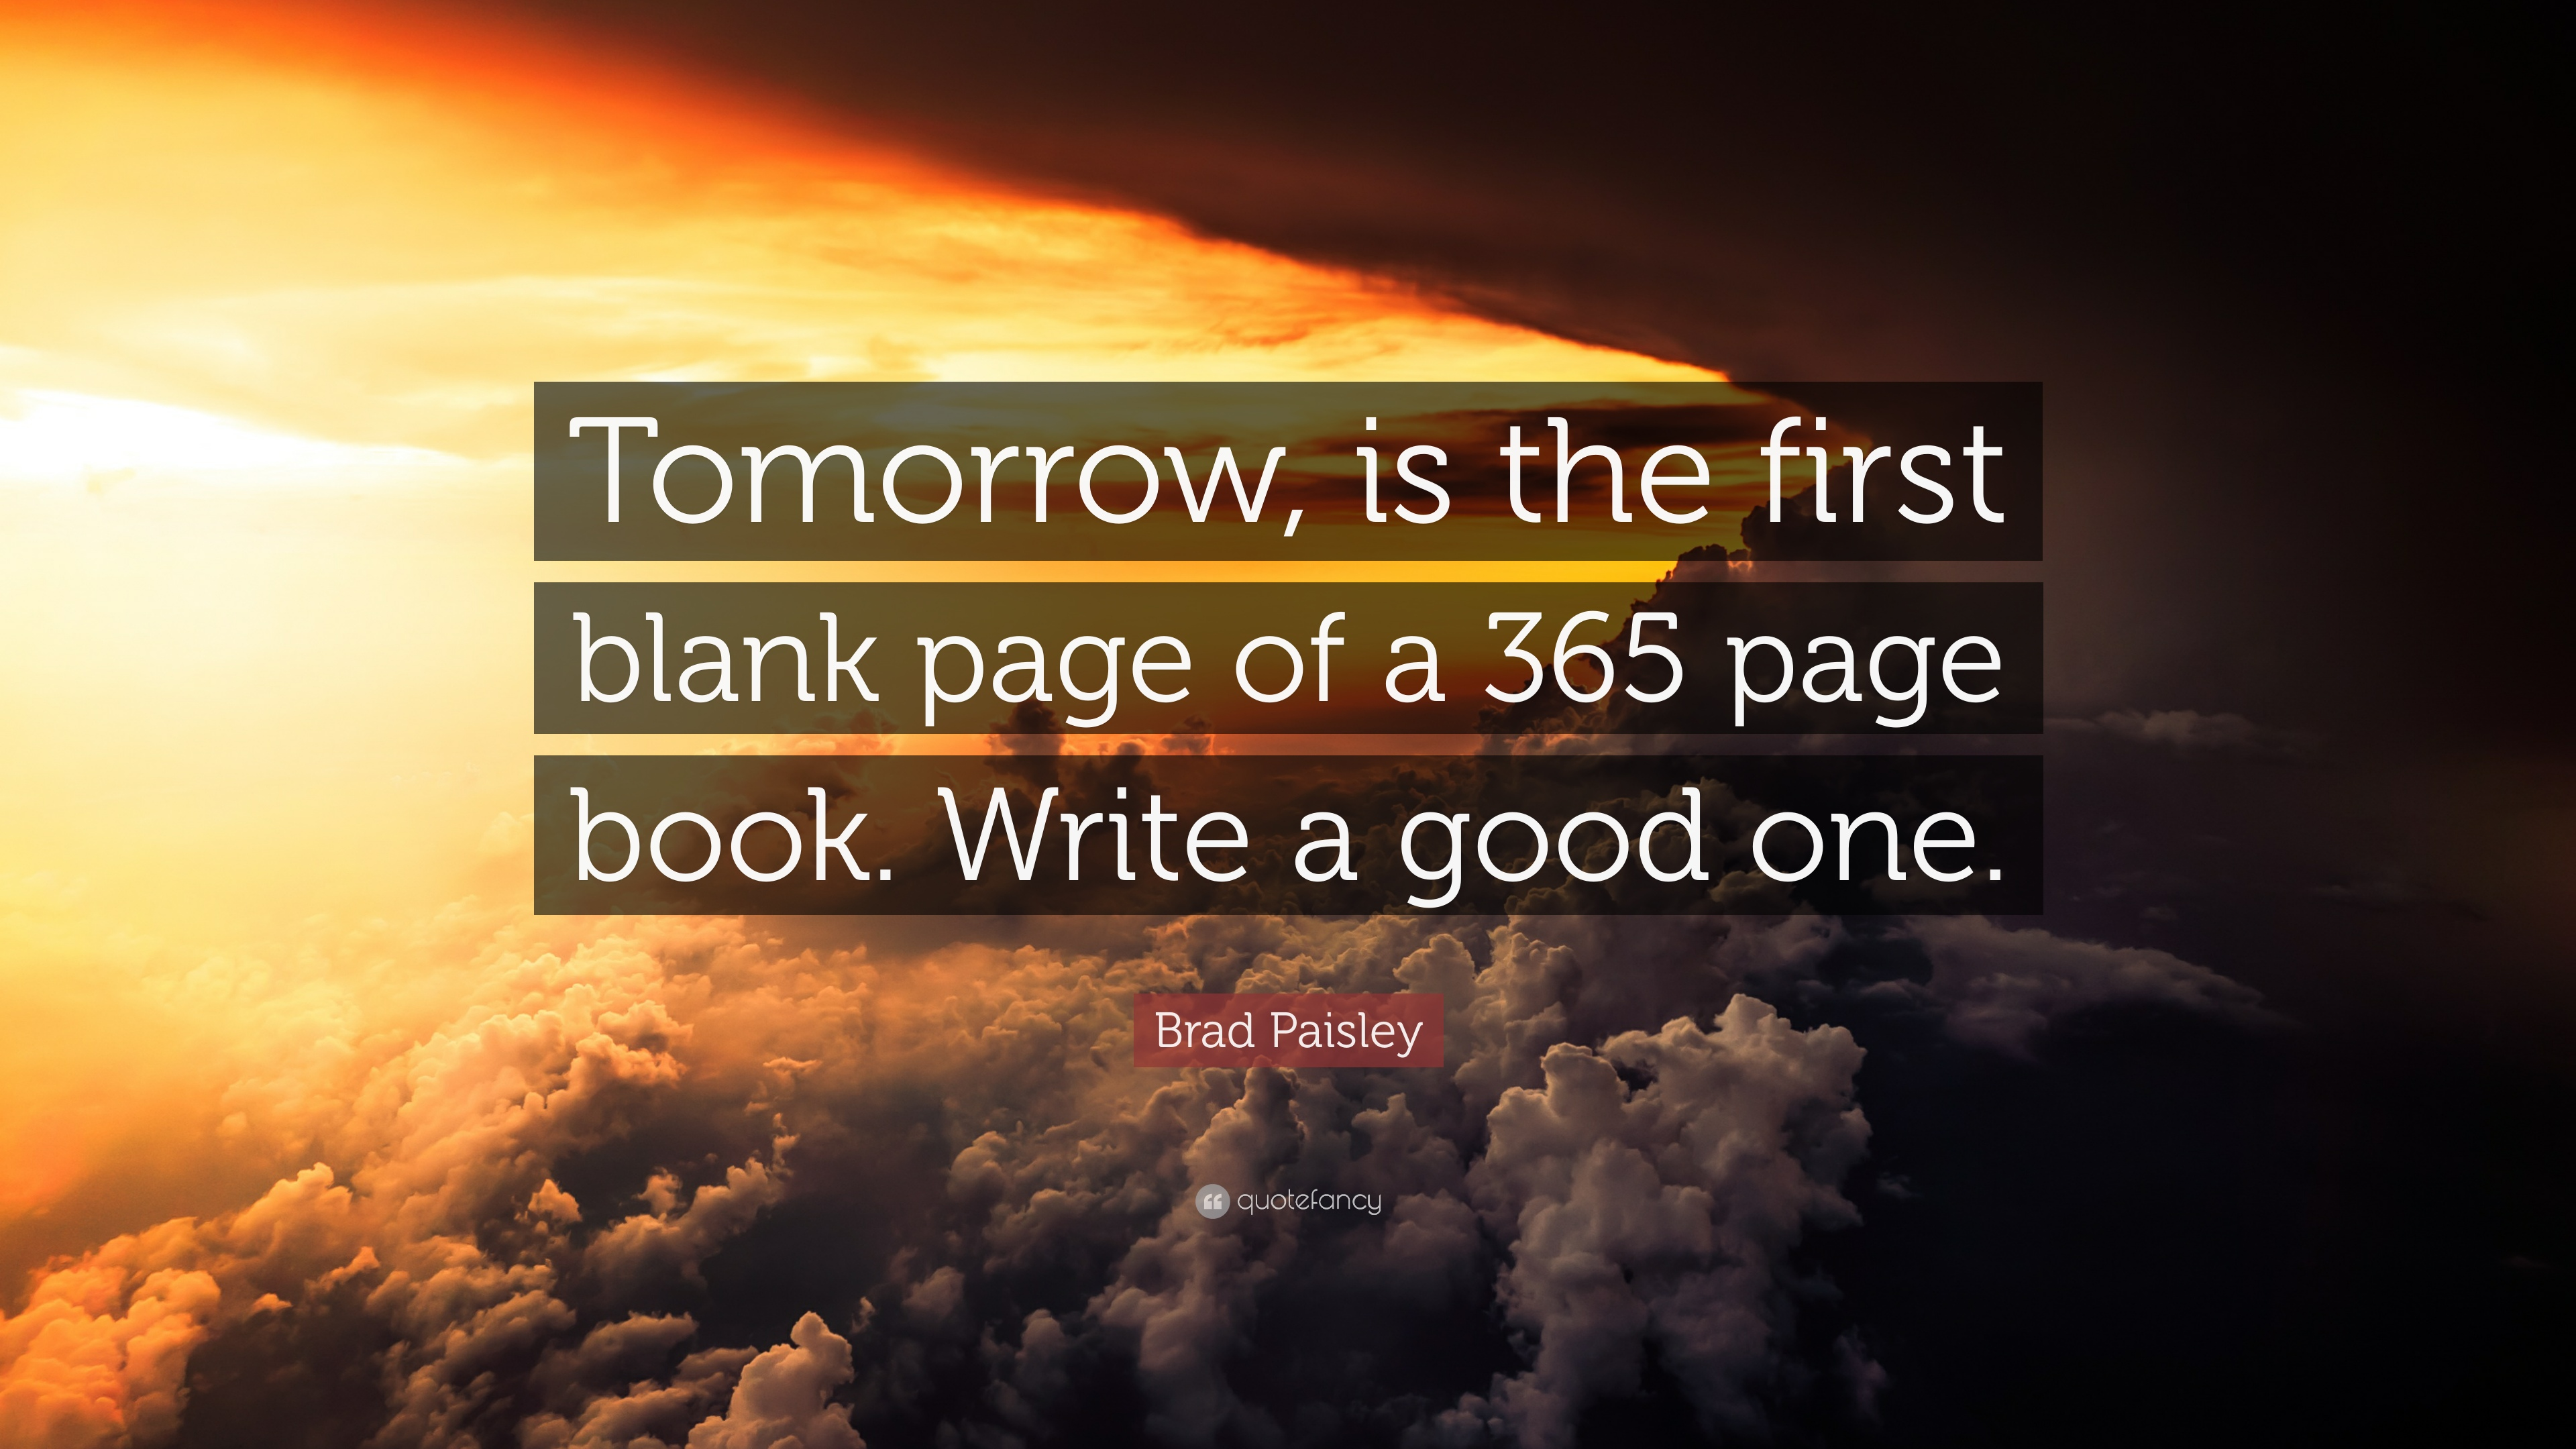 365 book write a good one